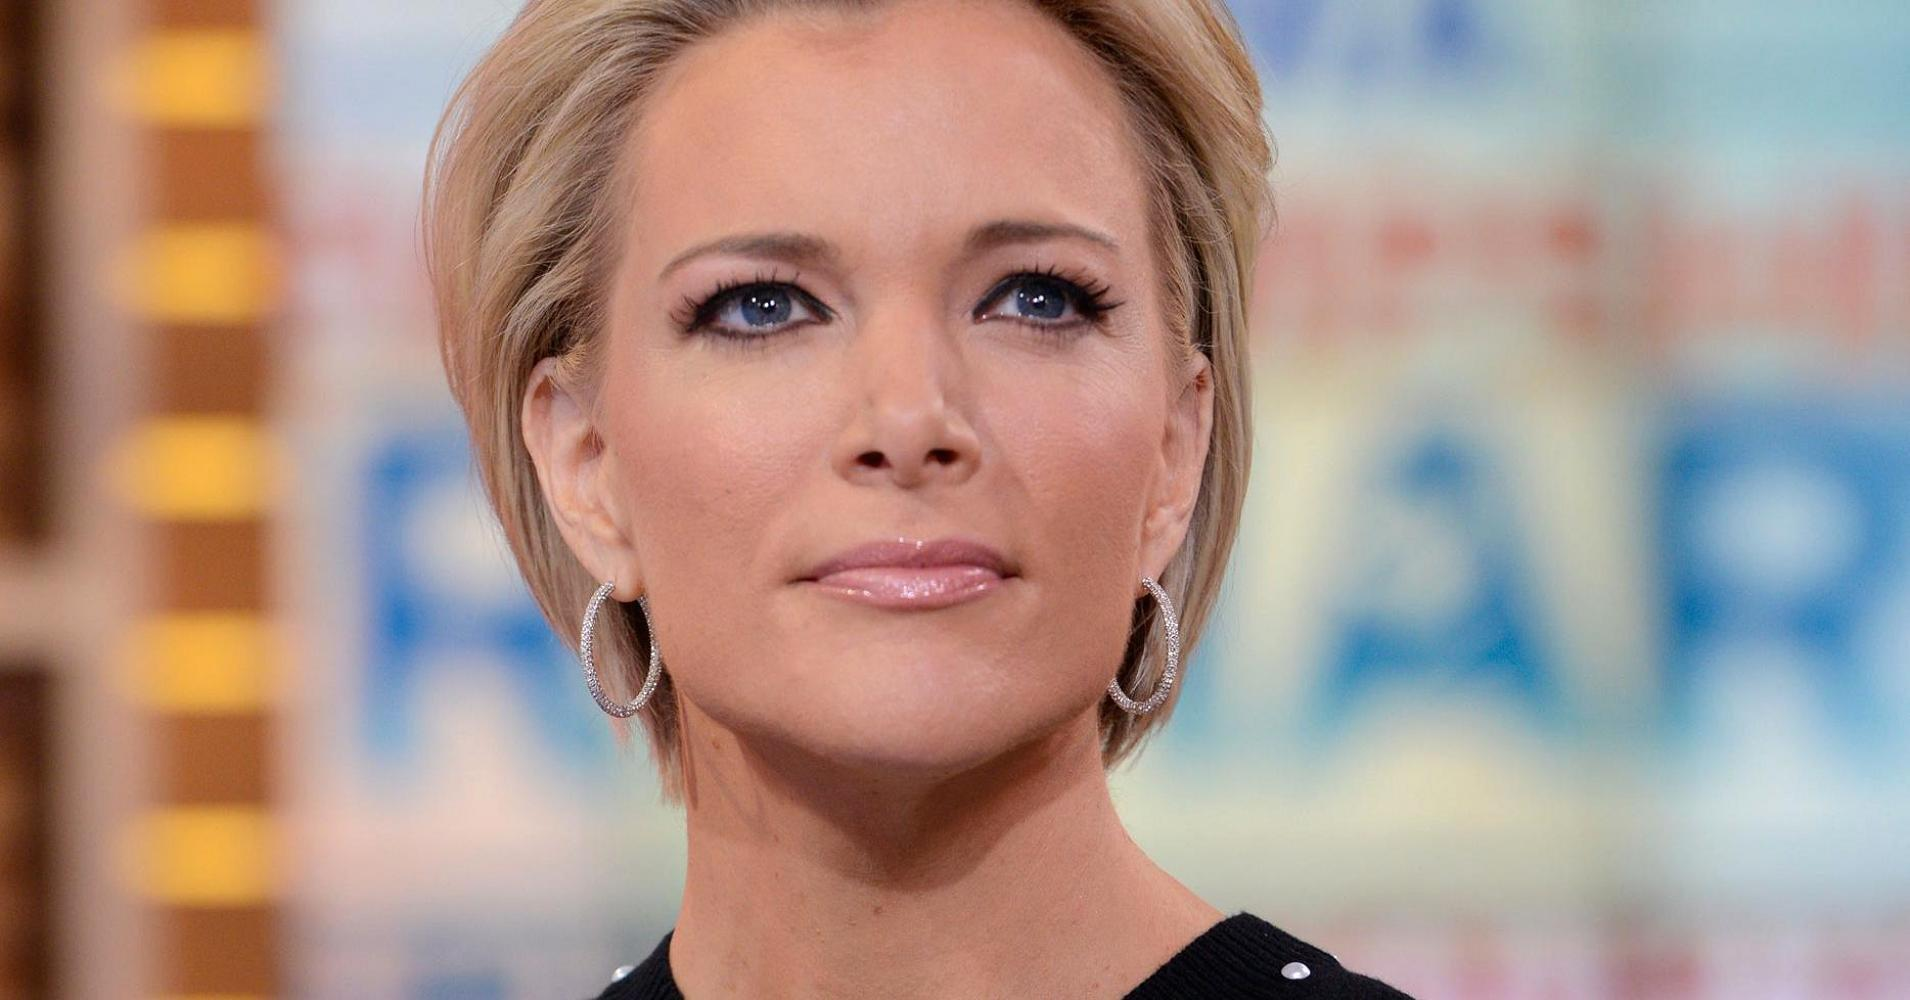 CNN trying to lure Fox News' Megyn Kelly, says Drudge Report